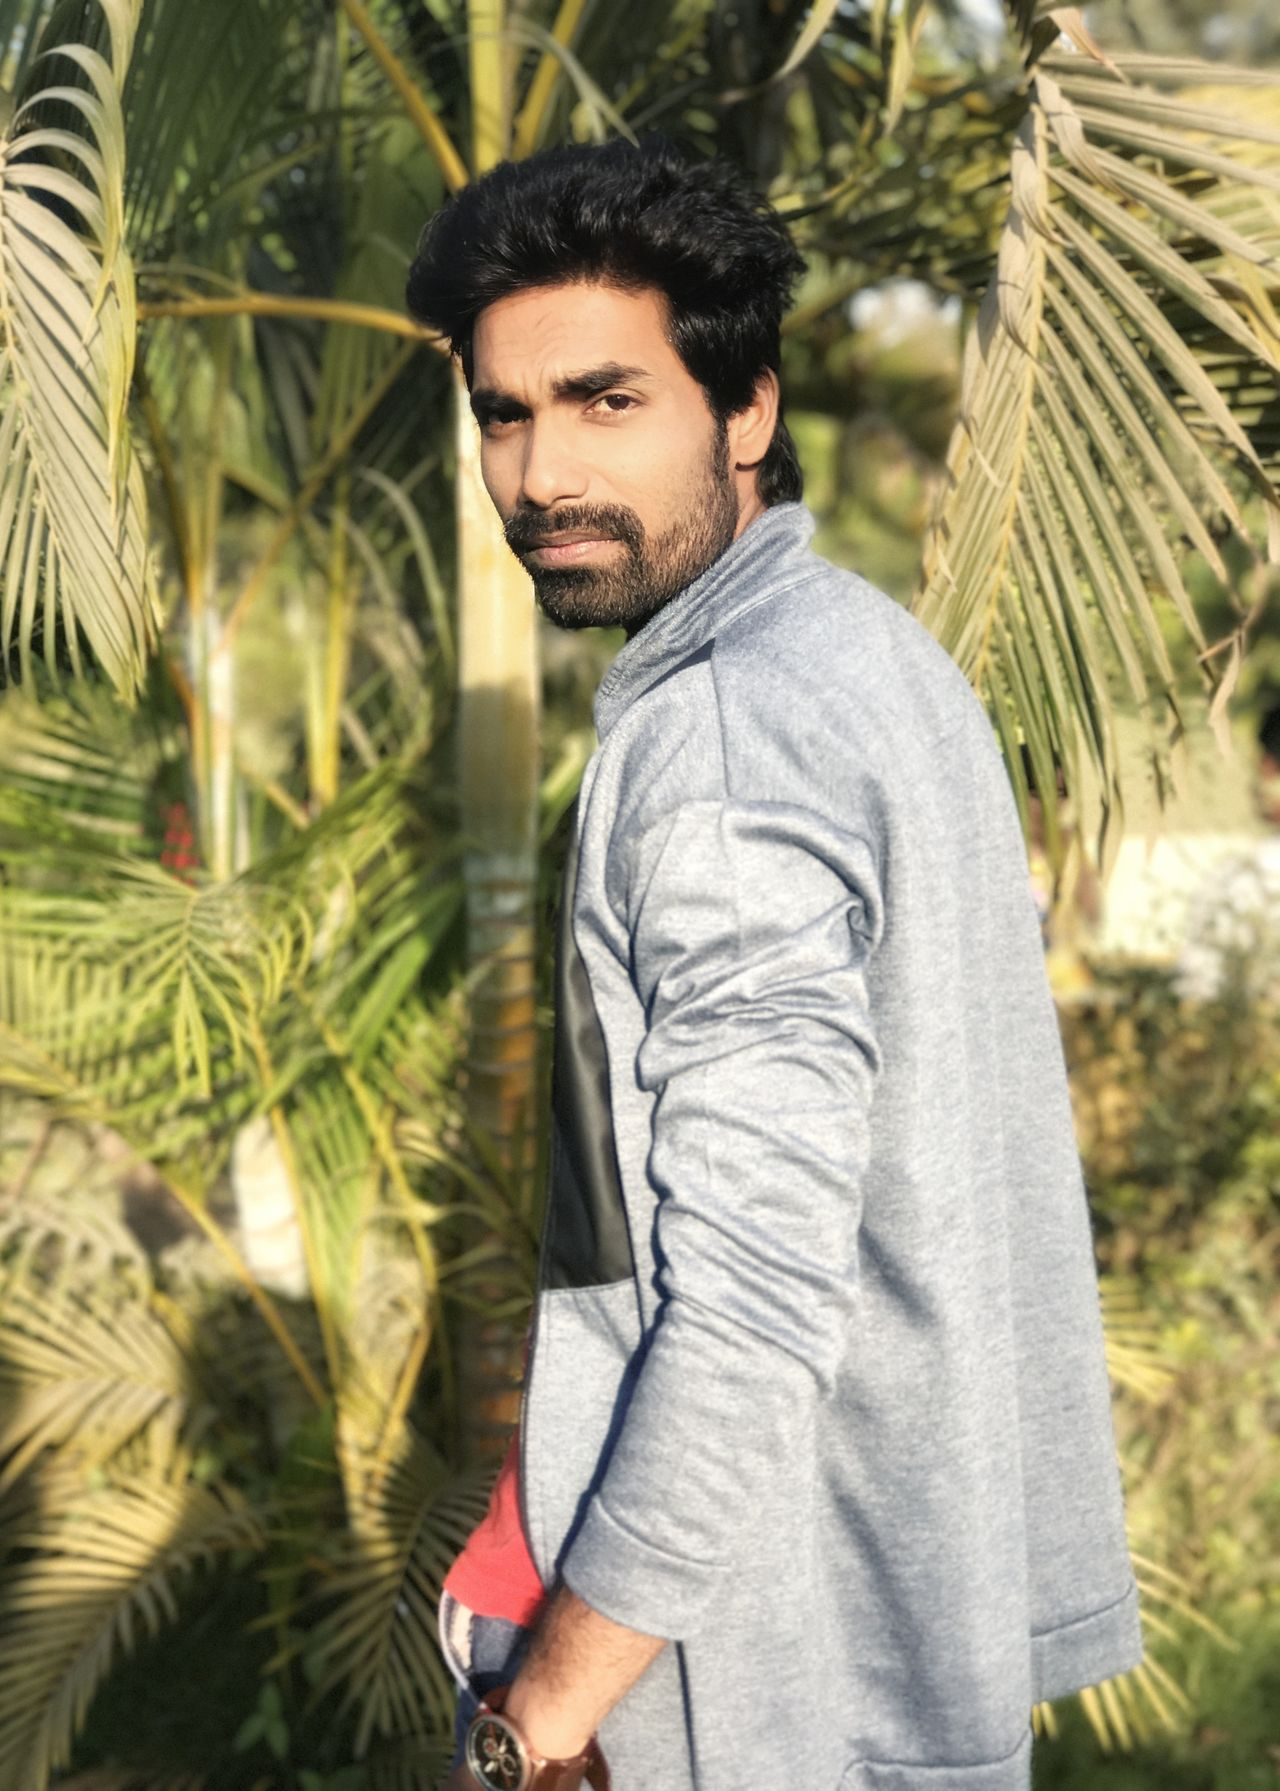 Fashion Portrait Beard One Man Only Men Lifestyles Only Men One Person Palm Tree Adults Only Tree Adult Outdoors Modern Young Adult People Day Robinraj Alpha